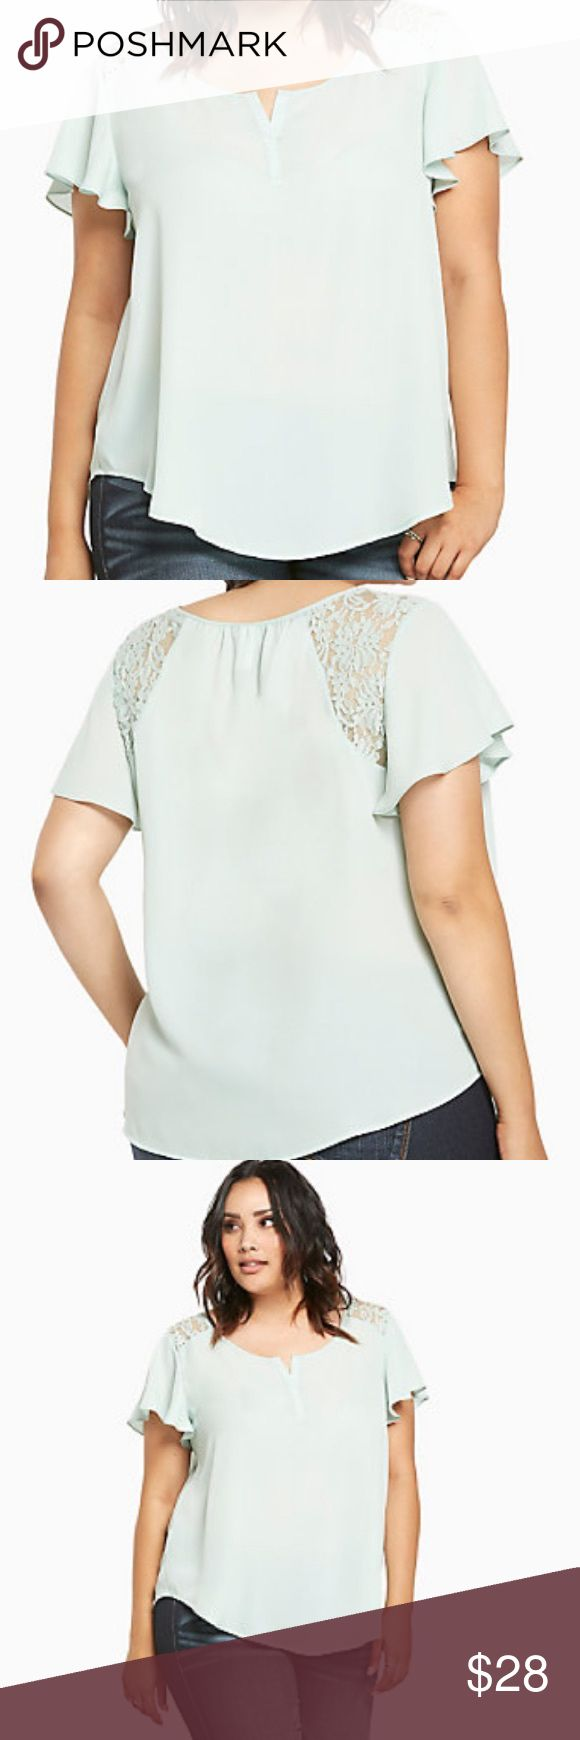 Lace Inset Flutter Sleeve Top Mint green georgette offers the easy-breezy look you crave, with a placket collar for added sophistication. Lace insets + flutter sleeves rewrite your romantic looks. (Worn only once or twice, great condition, no rips or stains)  ((PRICE HAS BEEN LOWERED, NO OTHER OFFERS WILL BE TAKEN)) torrid Tops Blouses